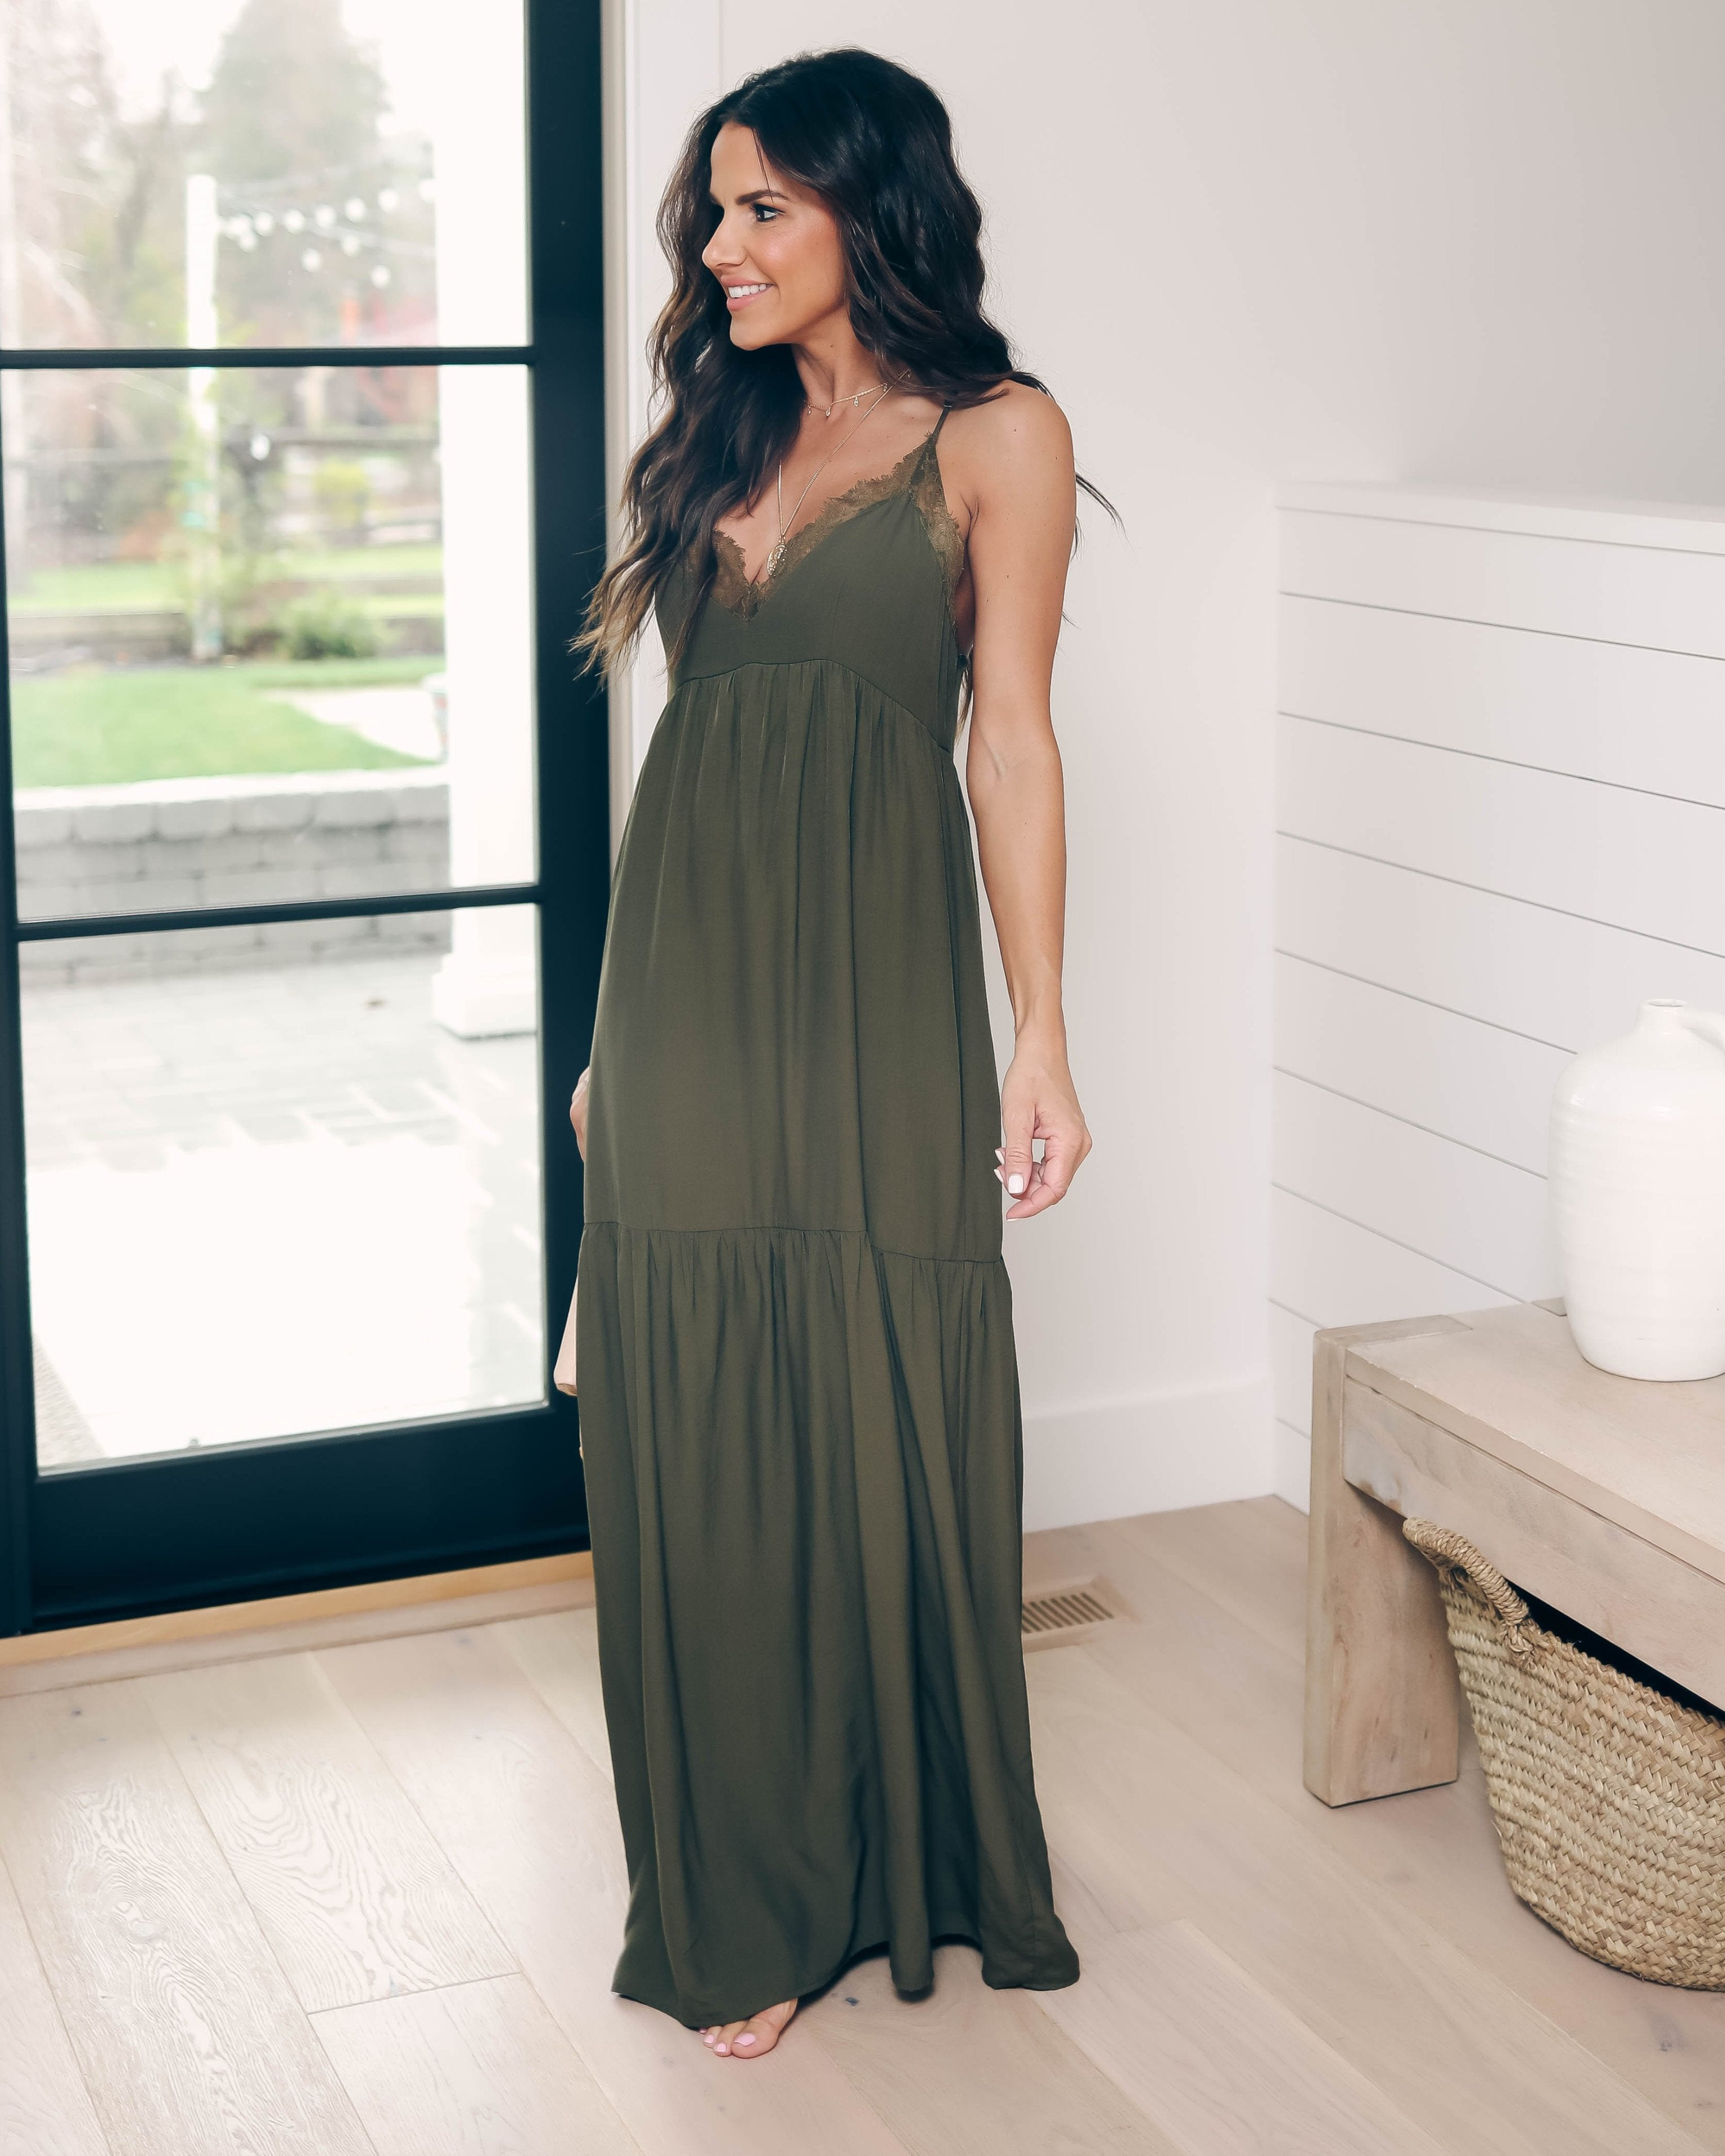 b461c6dcc21 Fallen Angel Tiered Slip Maxi Dress - Dark Olive - FINAL SALE – VICI